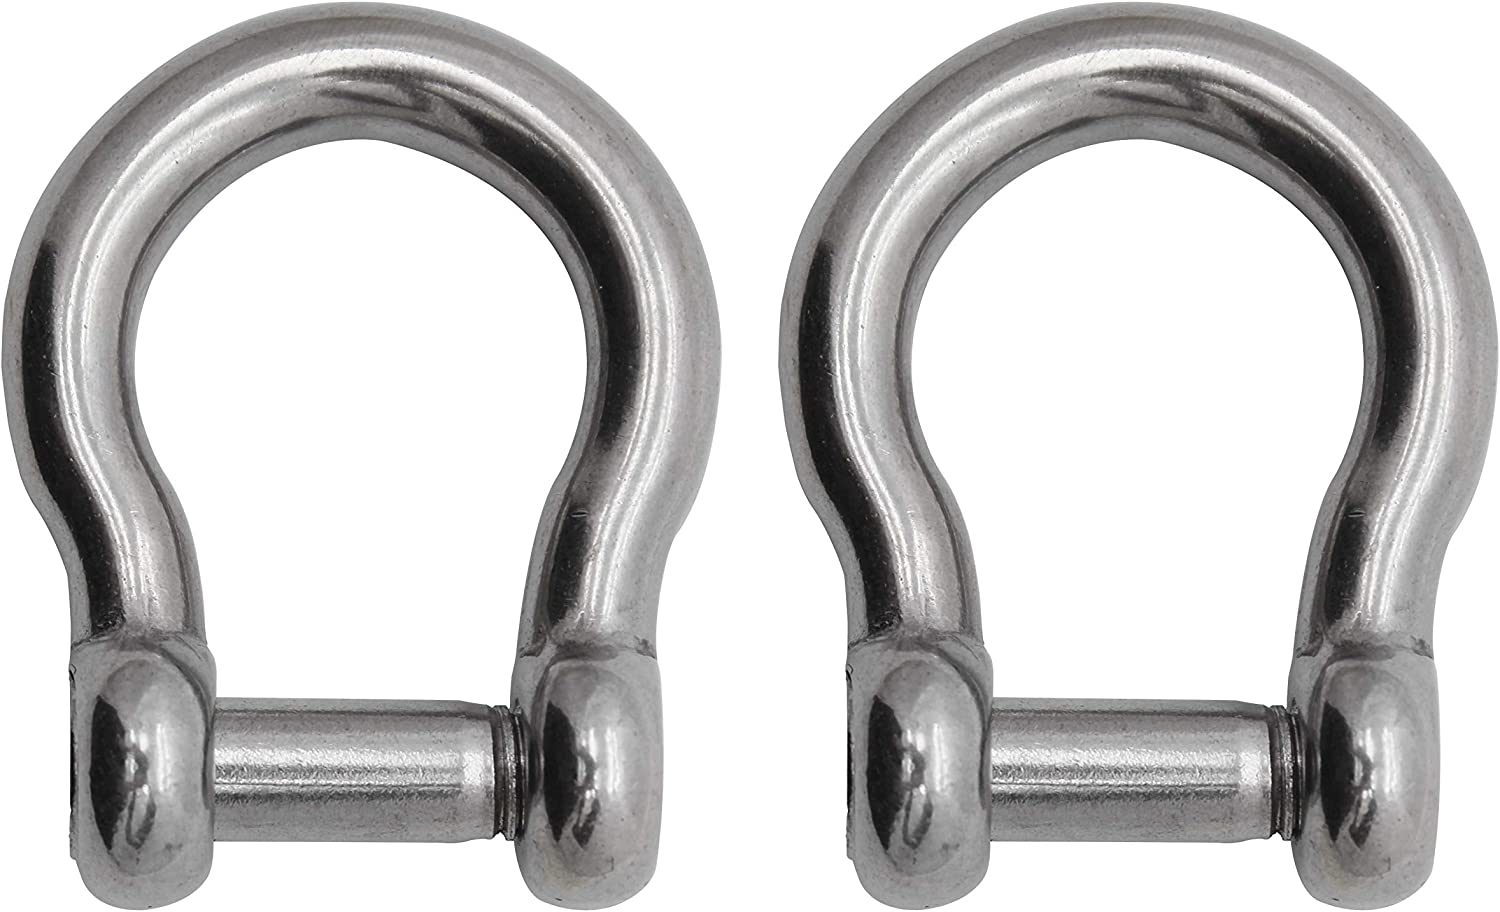 1//4 Extreme Max 3006.8405.2 BoatTector Stainless Steel Bow Shackle with No-Snag Pin 2-Pack